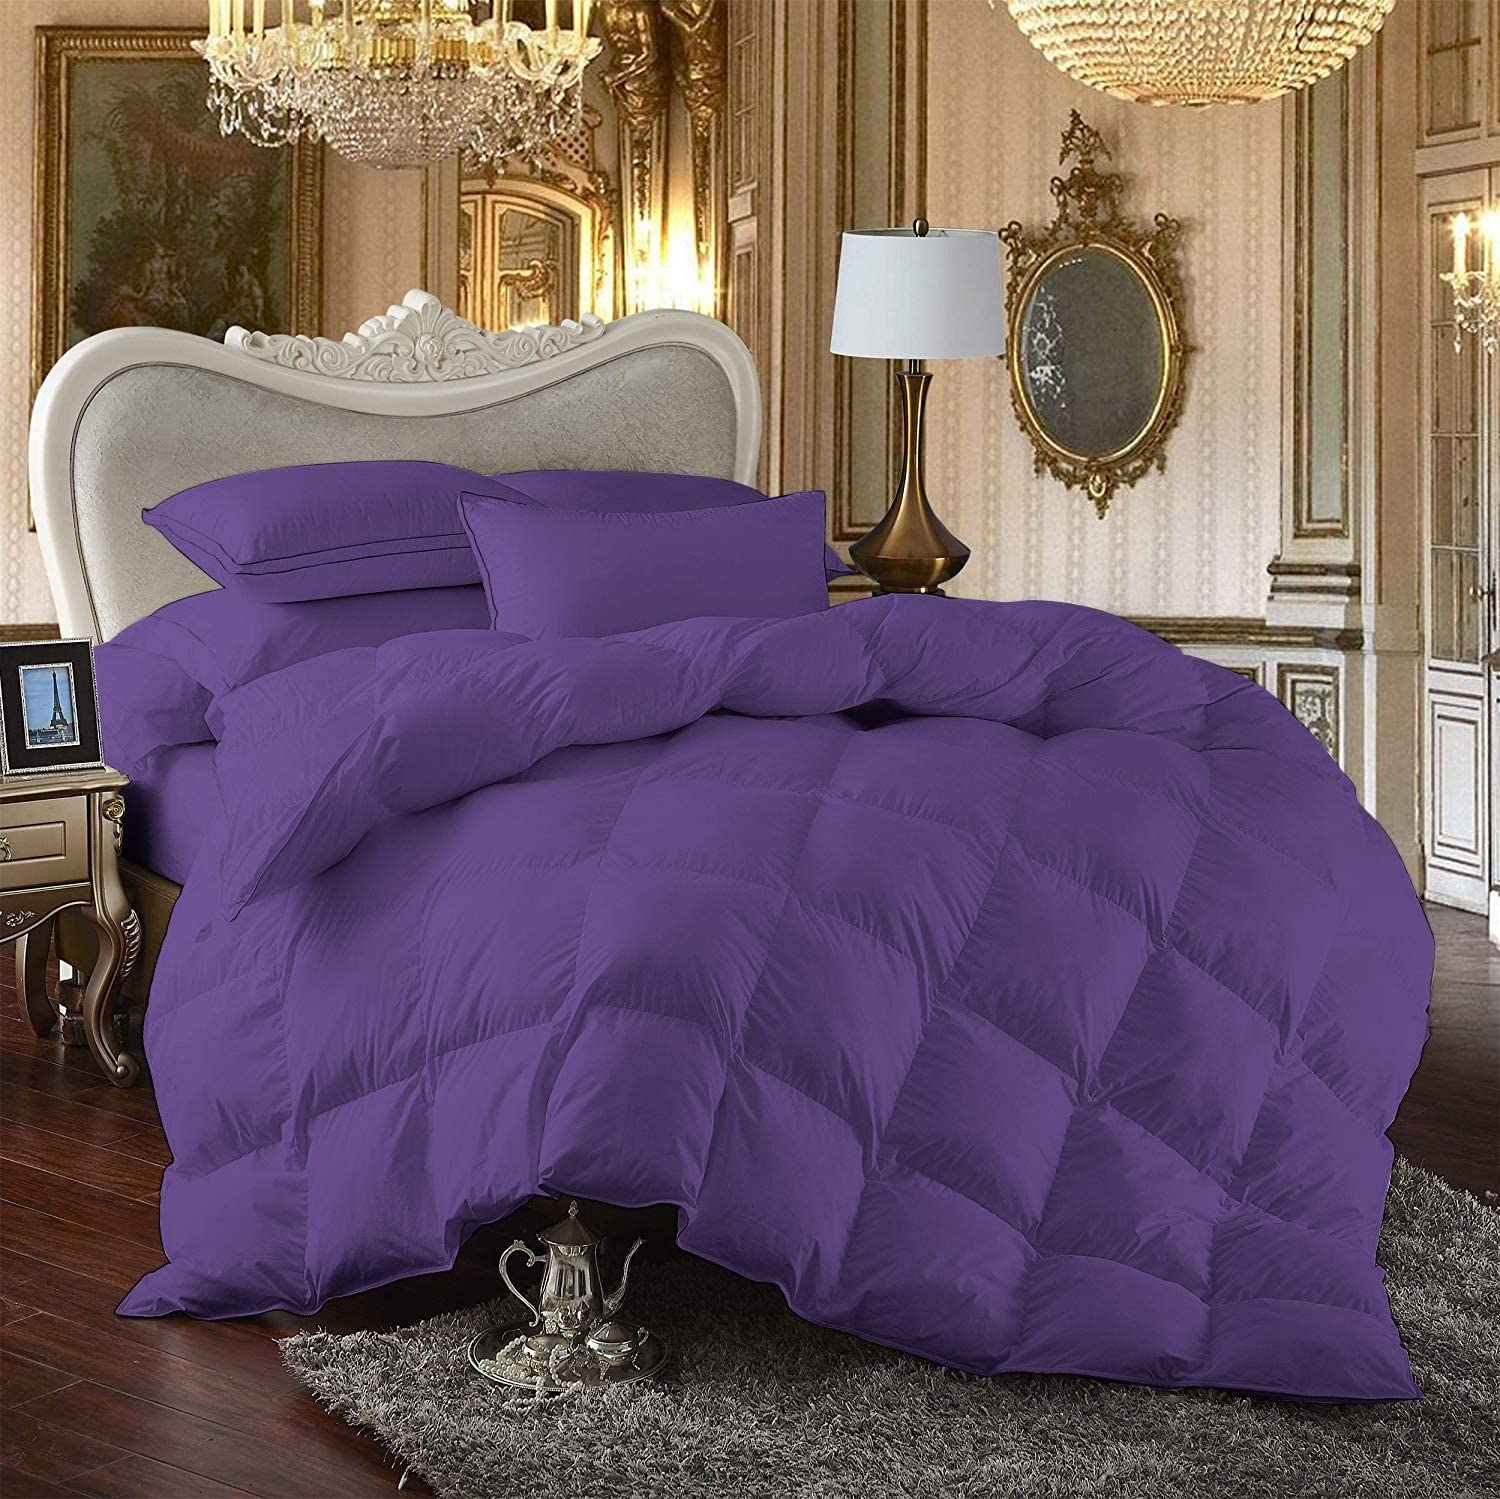 All Size /& Comfort Bedding Items Purple Solid 1000 Thread Count Egyptian Cotton